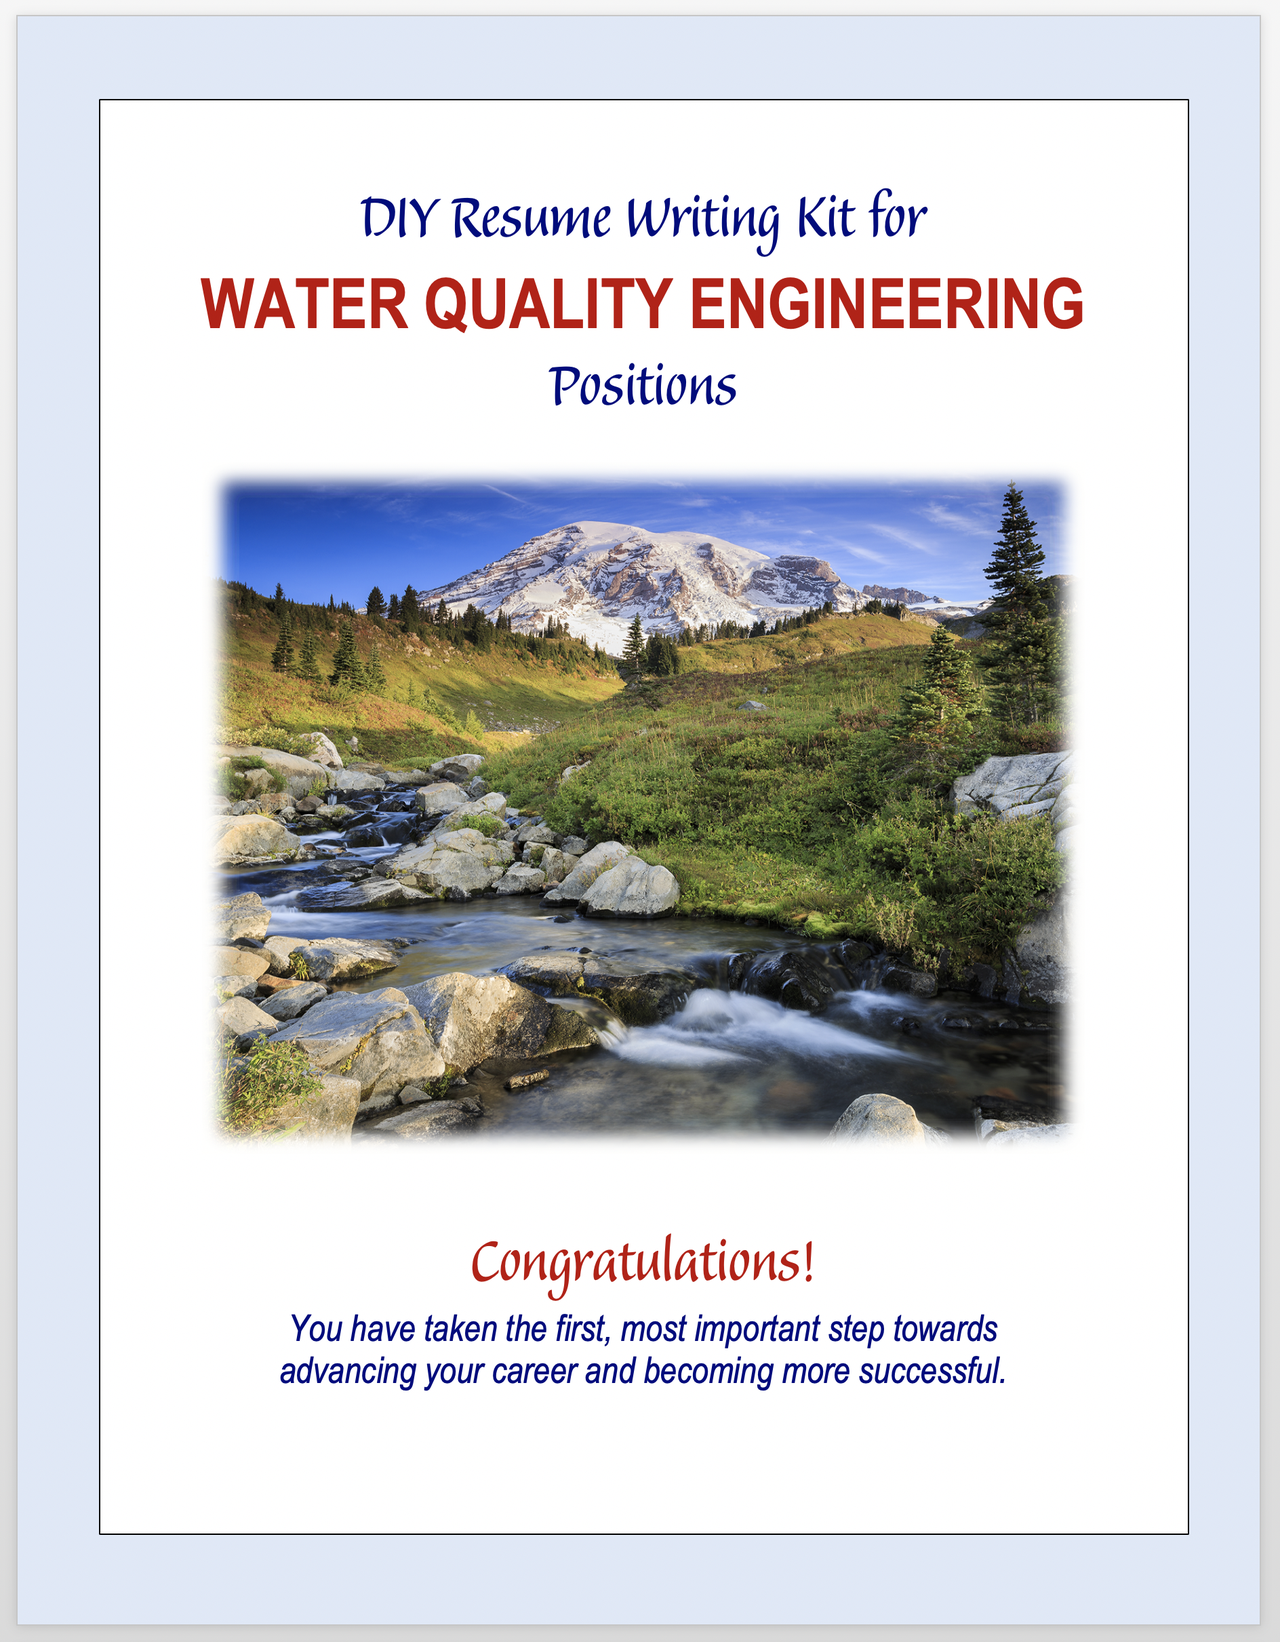 water quality engineering.png